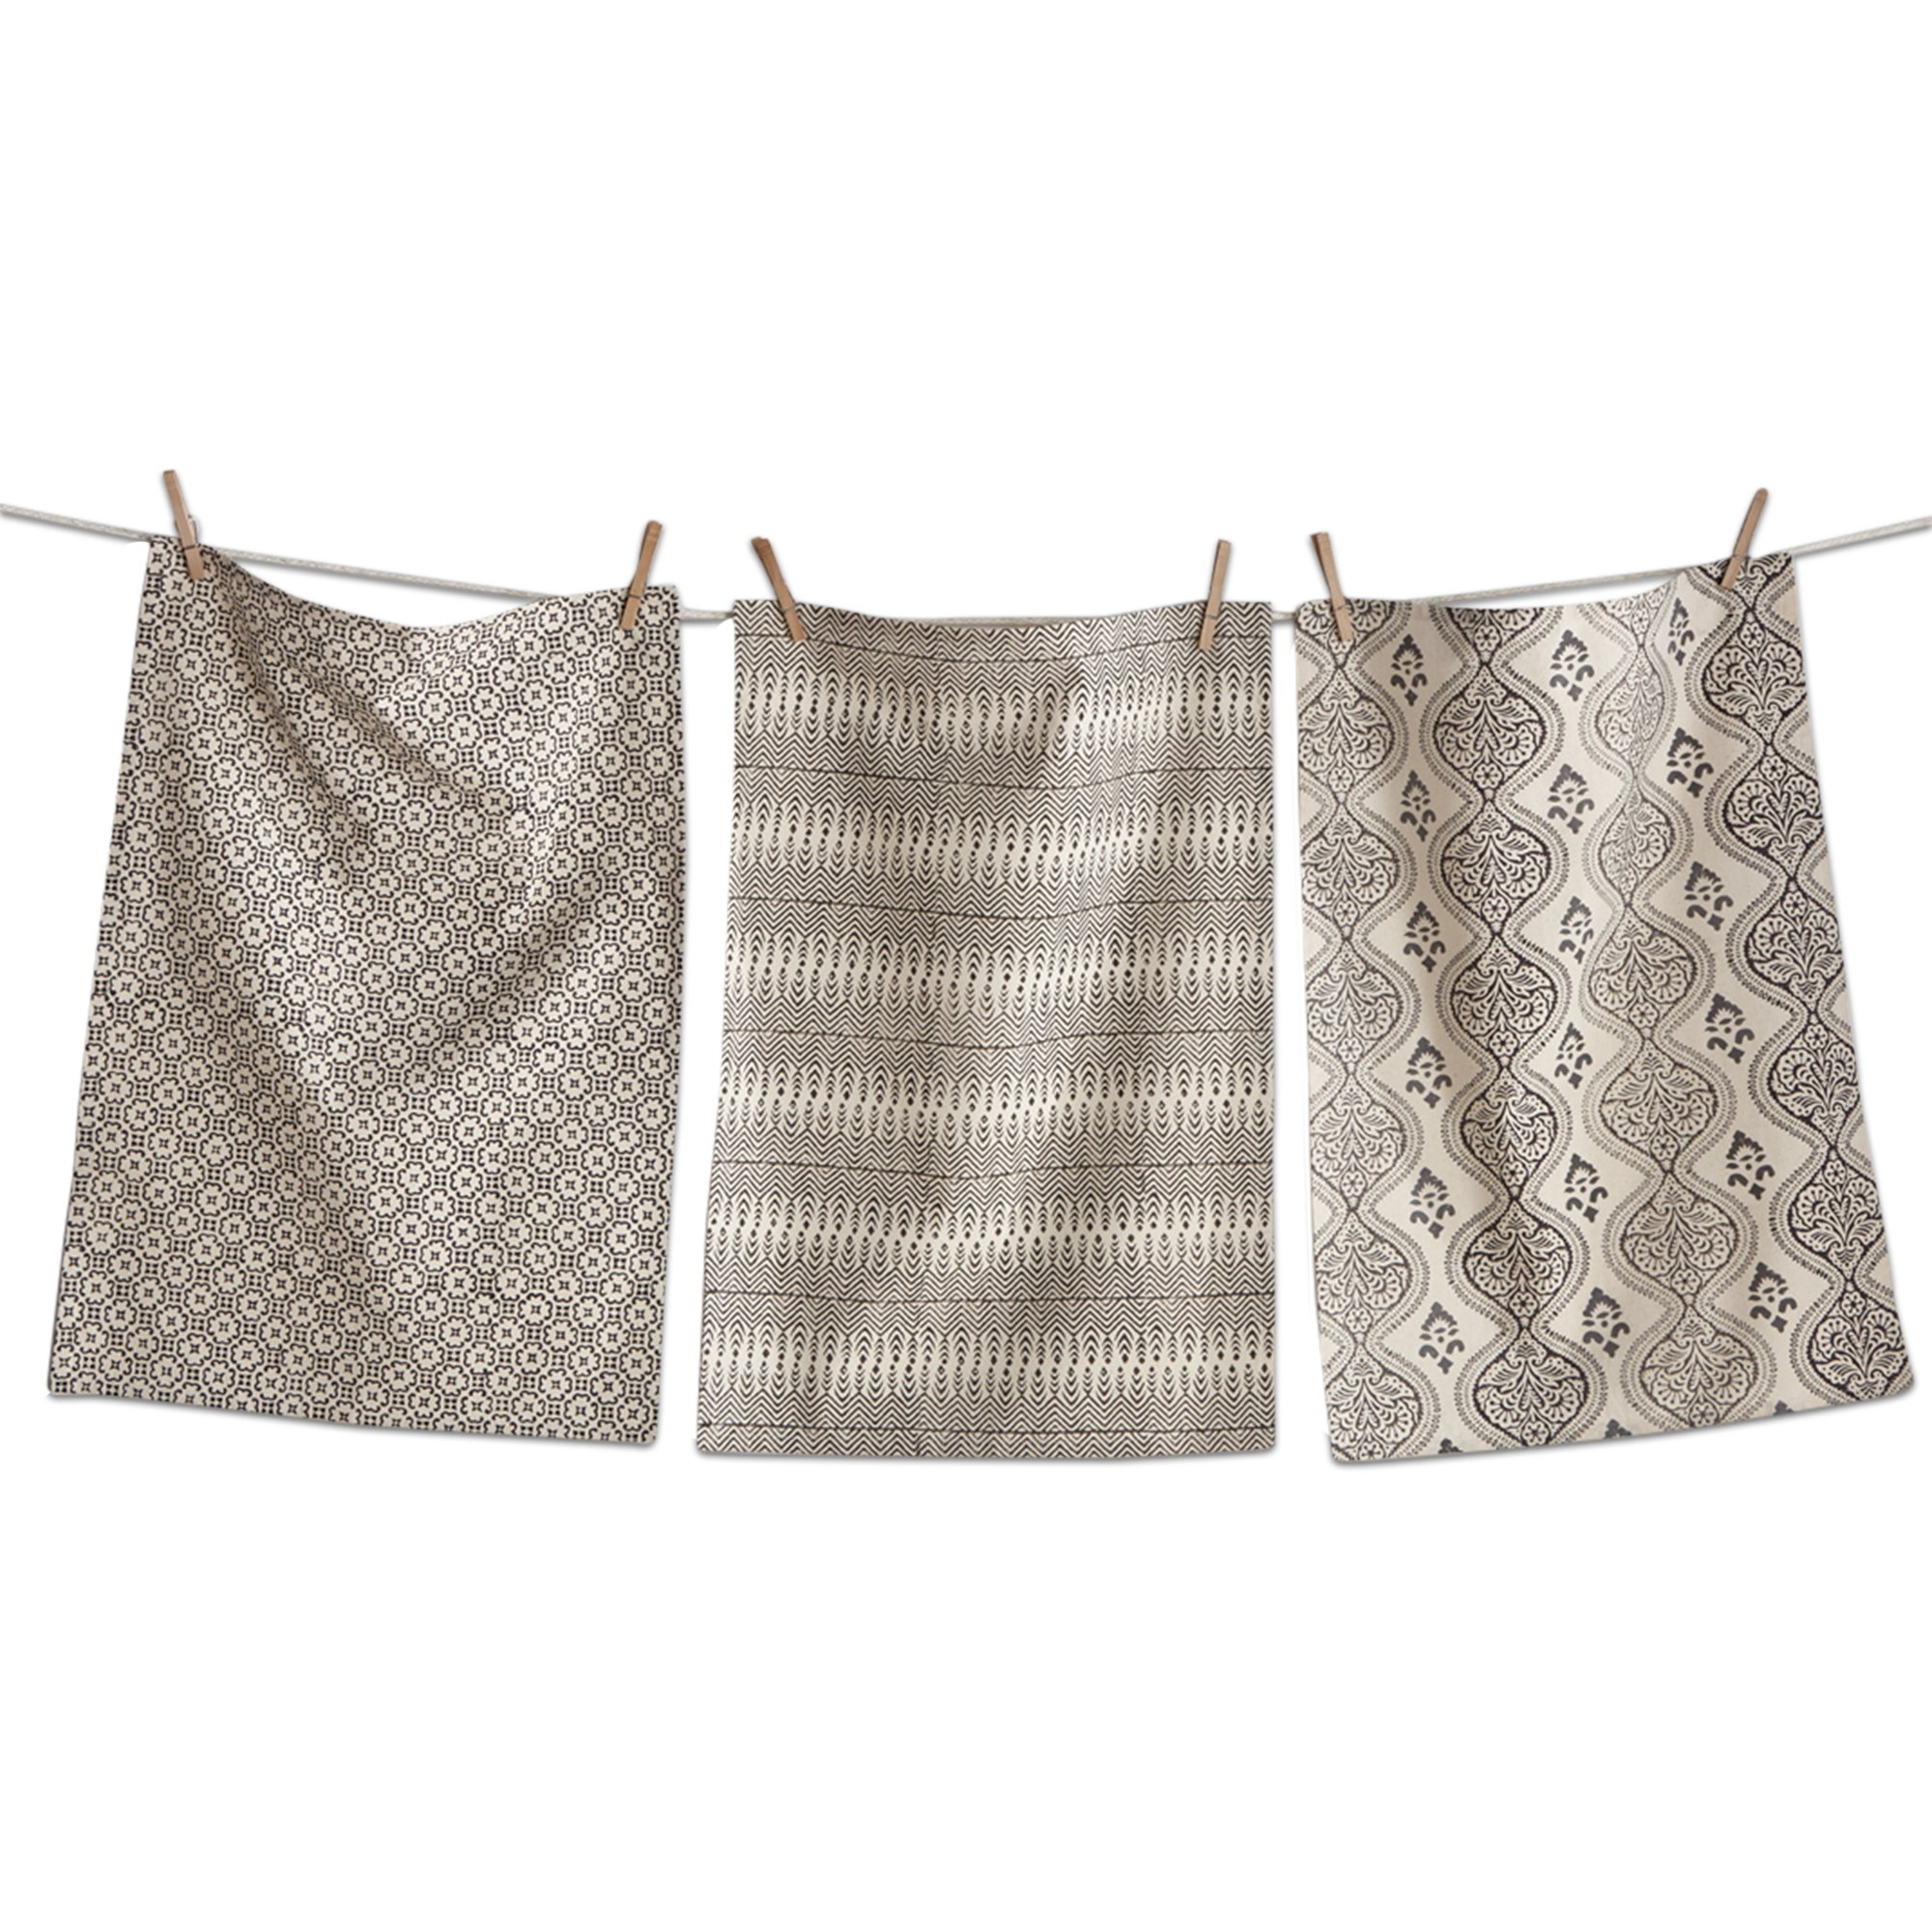 tag - Henna Block Print Dishtowels, Beautiful Designs and Colors Make a Perfect Addition to Any Kitchen, Natural and Black, Set of 3 (26'' x 18'')